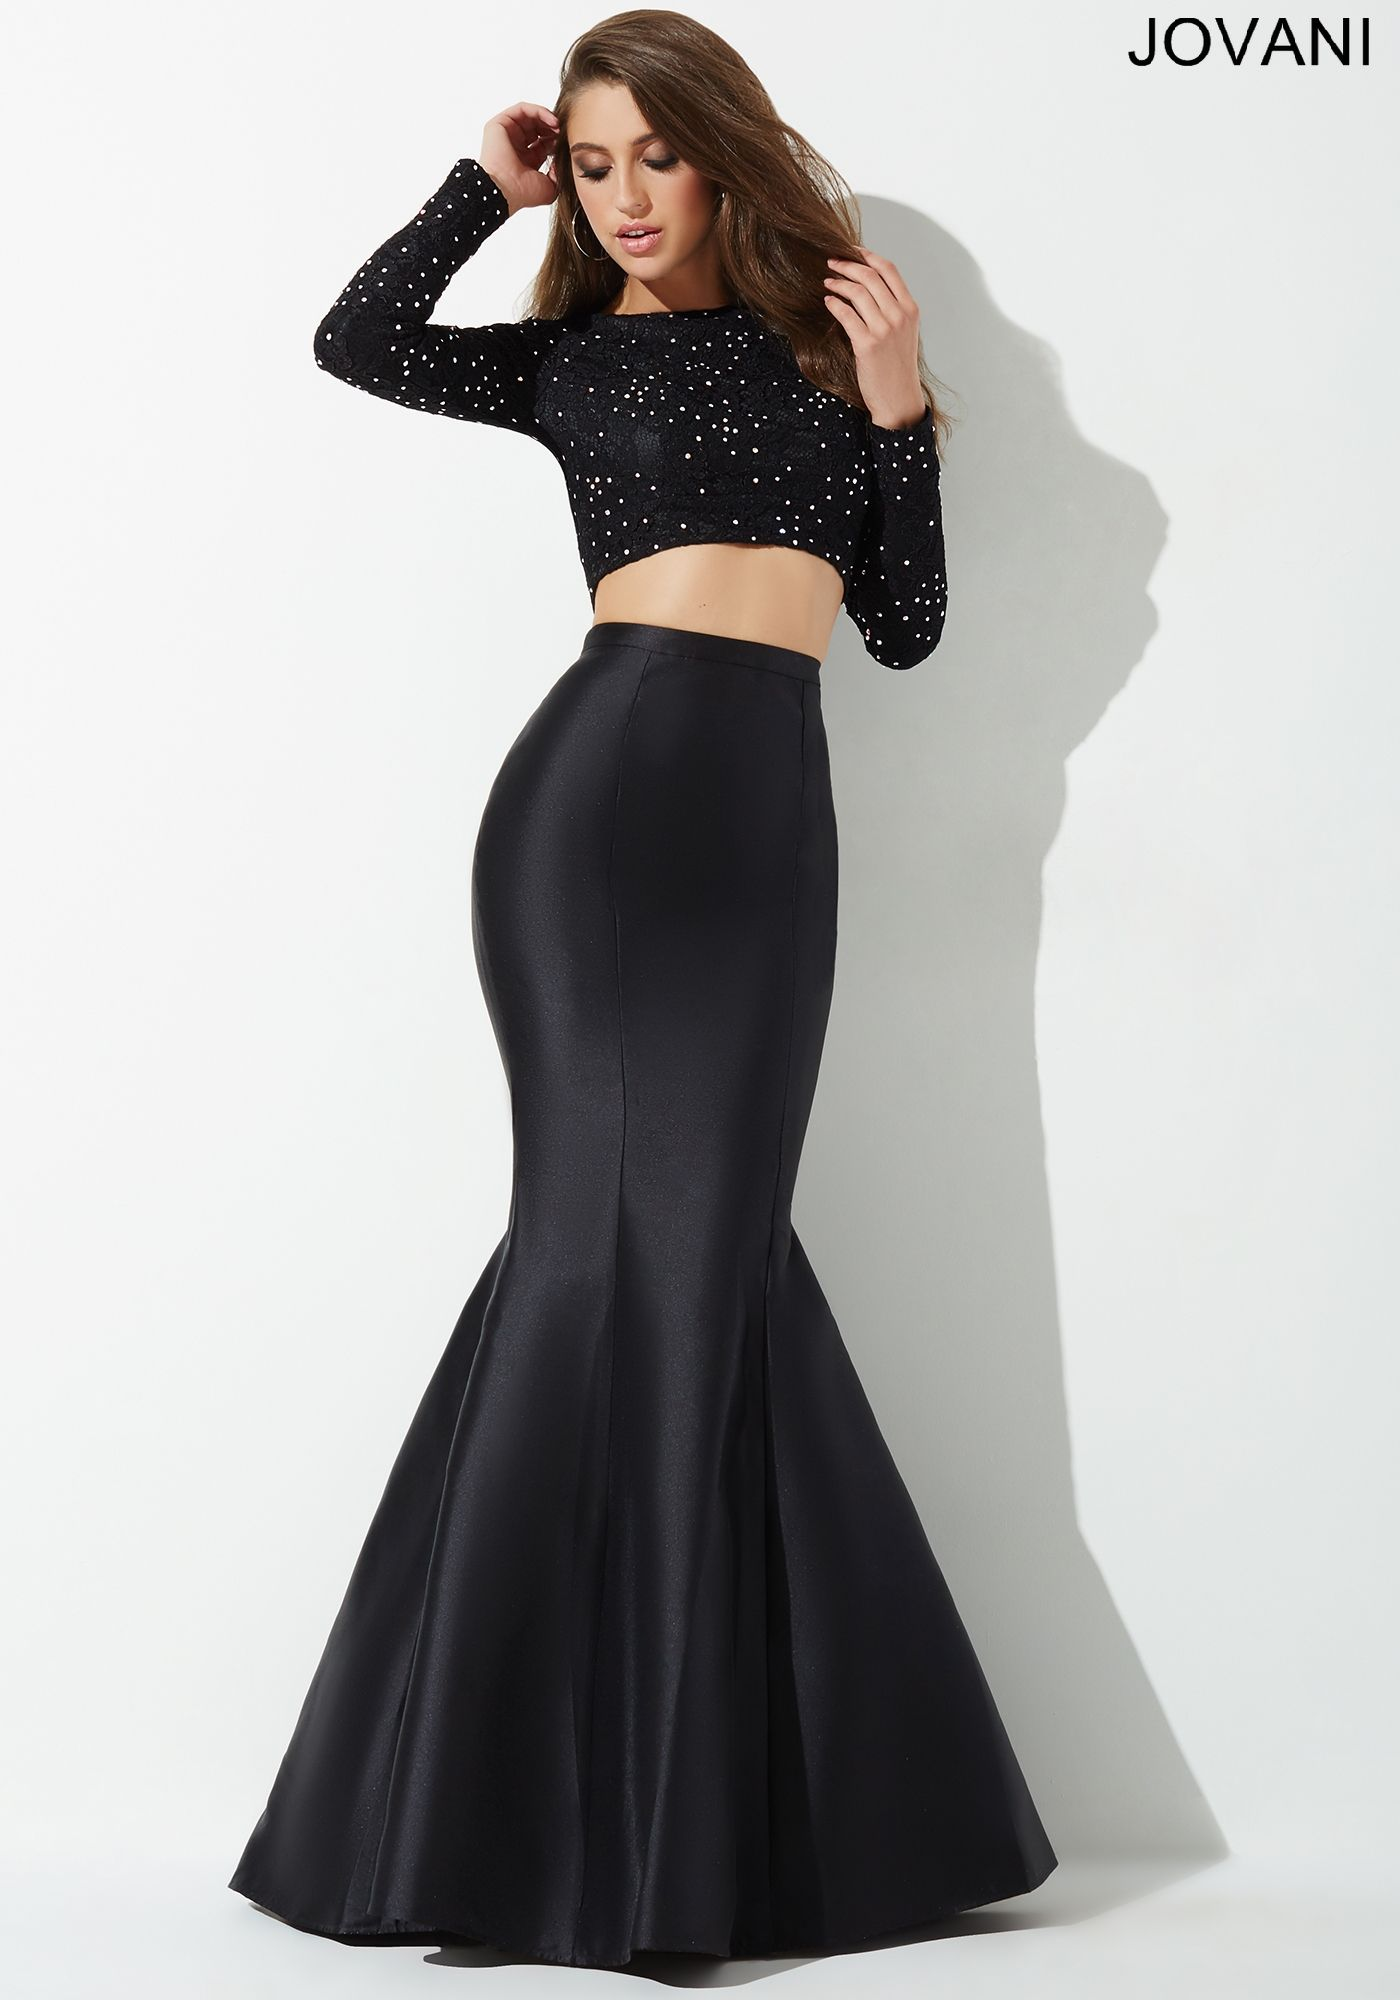 Gorgeous twopiece prom dress features a crystal embellished long